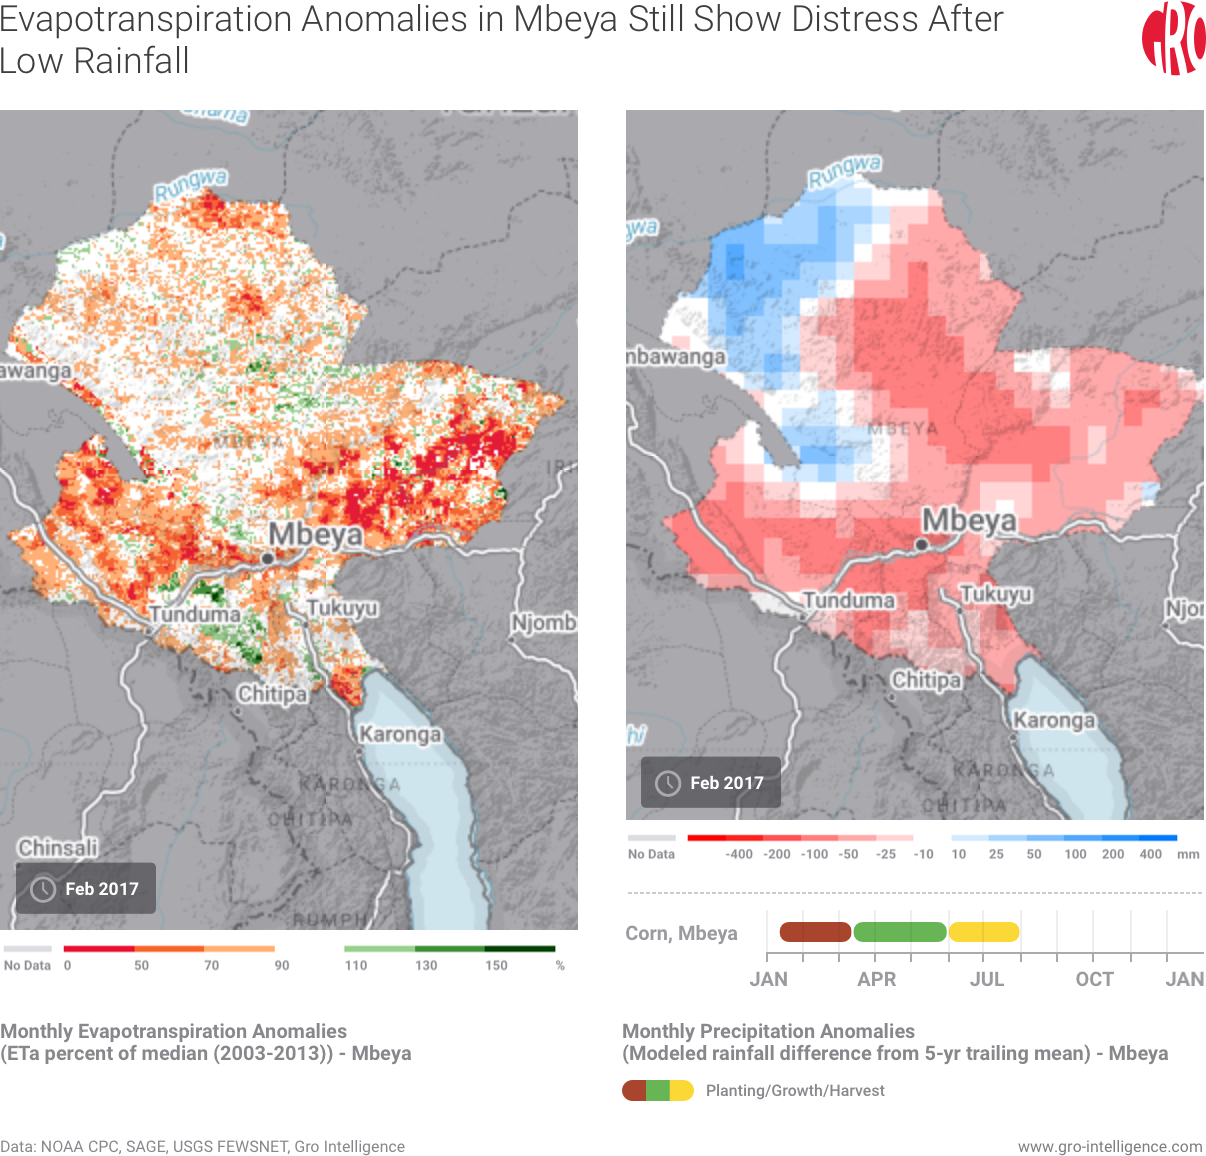 Evapotranspiration Anomalies in Mbeya Still Show Distress After Low Rainfall